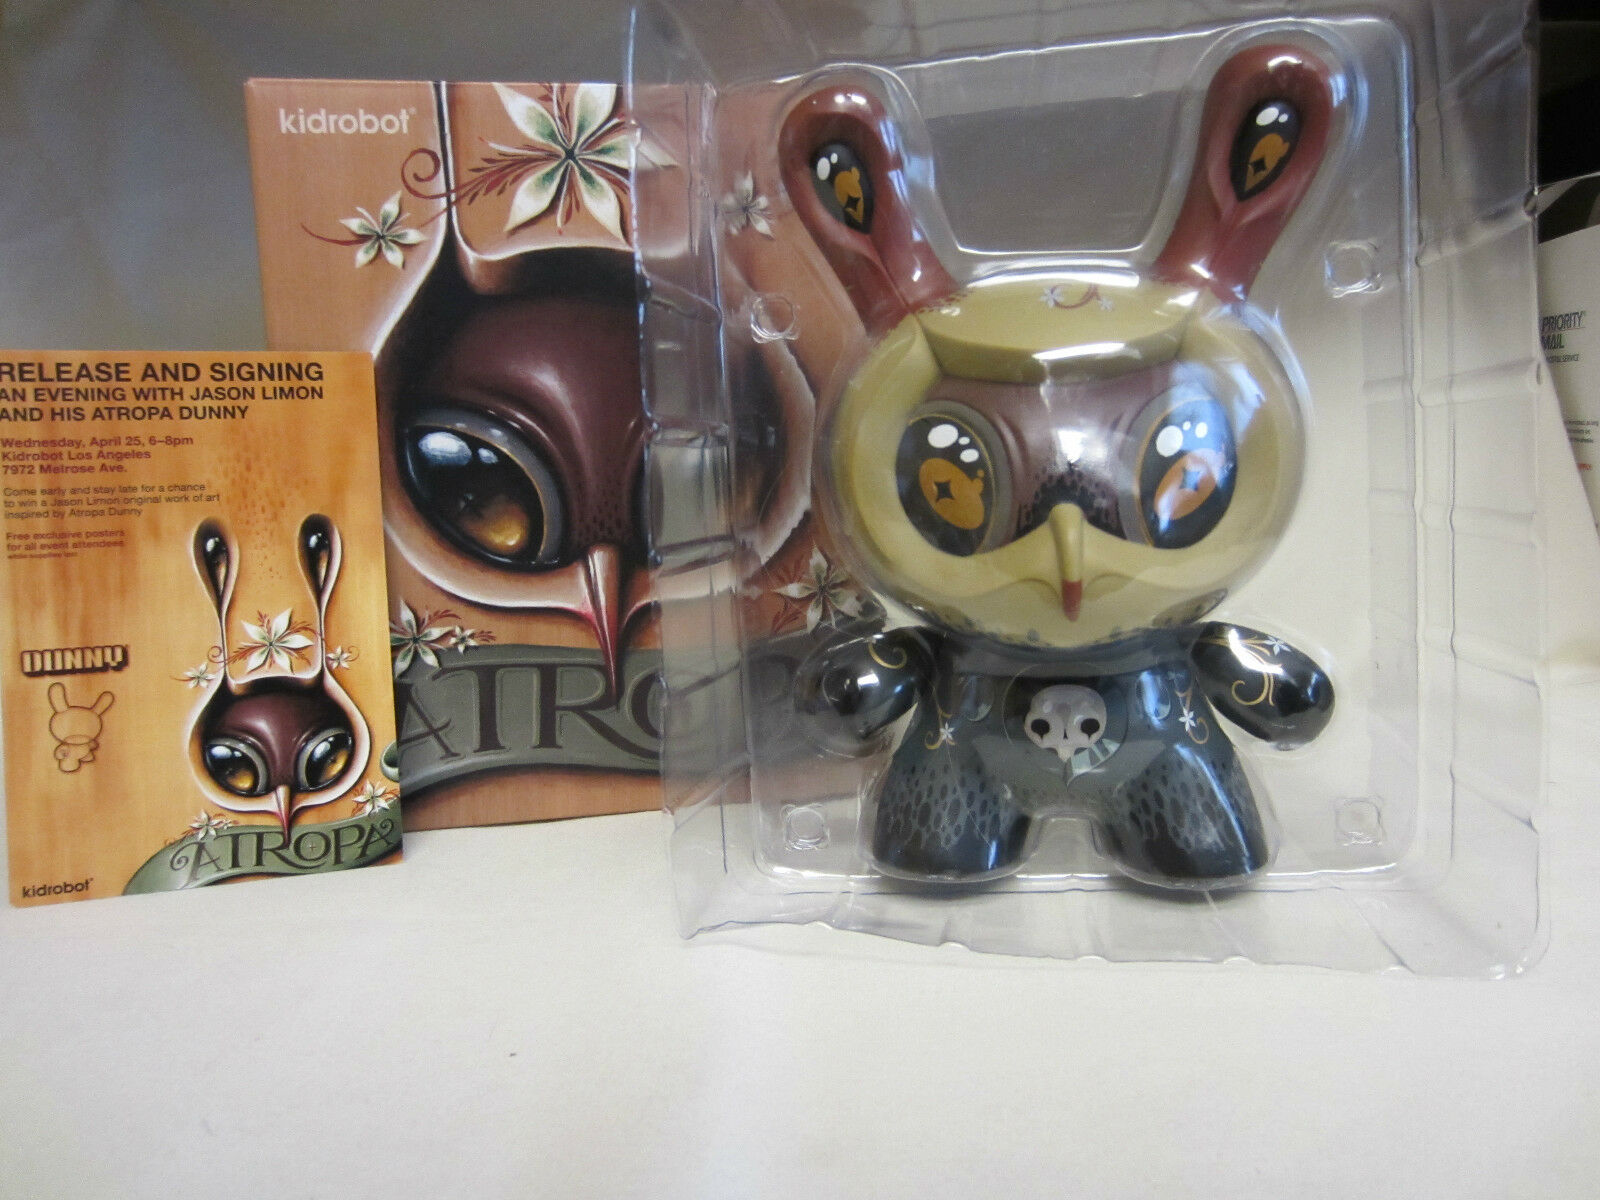 Kidrobot Dunny 8  Atropa Jason Limon SIGNED  postcard NEW In BOX